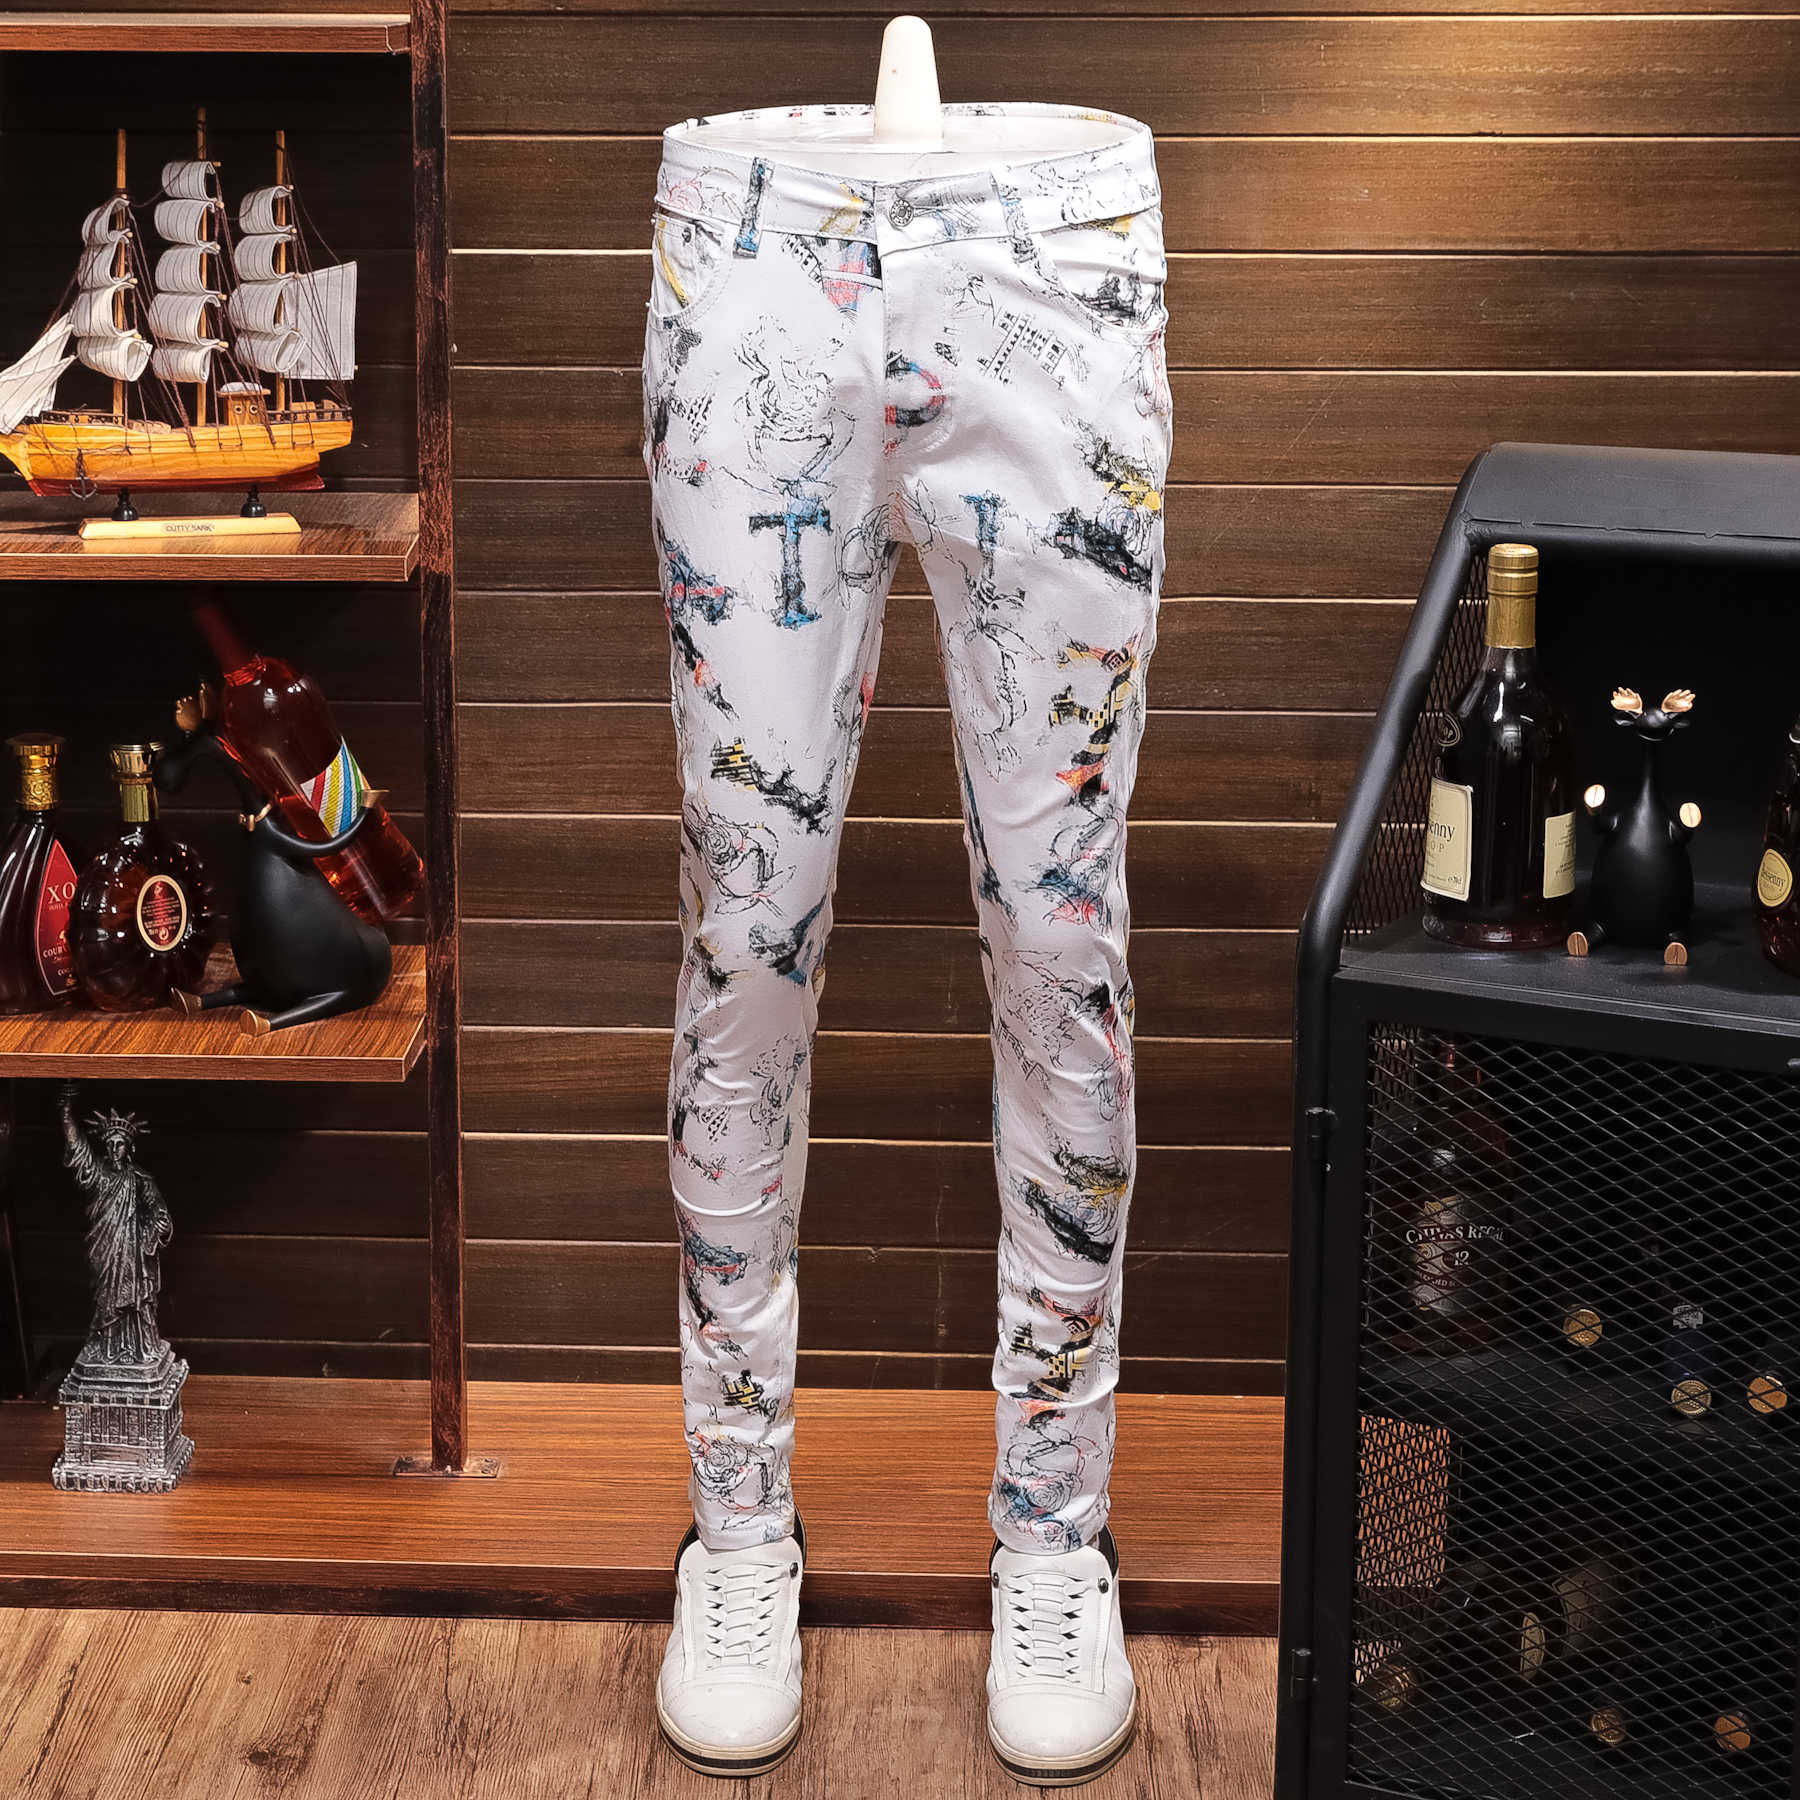 White Printing Man Jeans Leisure Time Long Pants Tide Jeans Men Slim Straight Stretch Jeans Designer Pants Nightclubs Singers